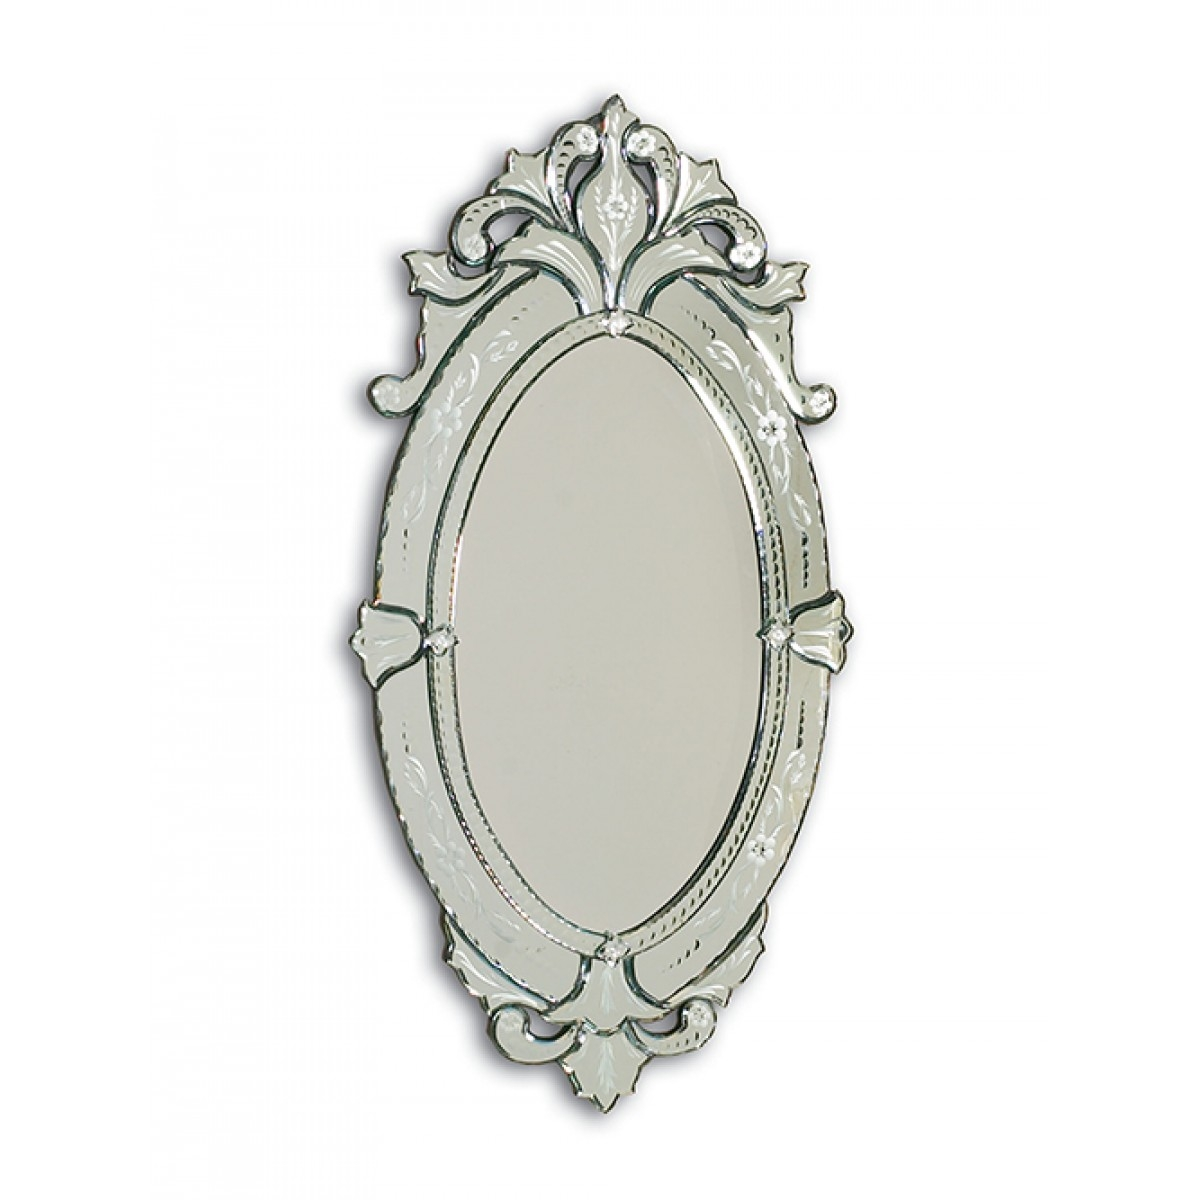 Barge Hand Cut And Etched Oval Venetian Glass Mirror Frame Regarding Venetian Etched Glass Mirror (Image 3 of 15)